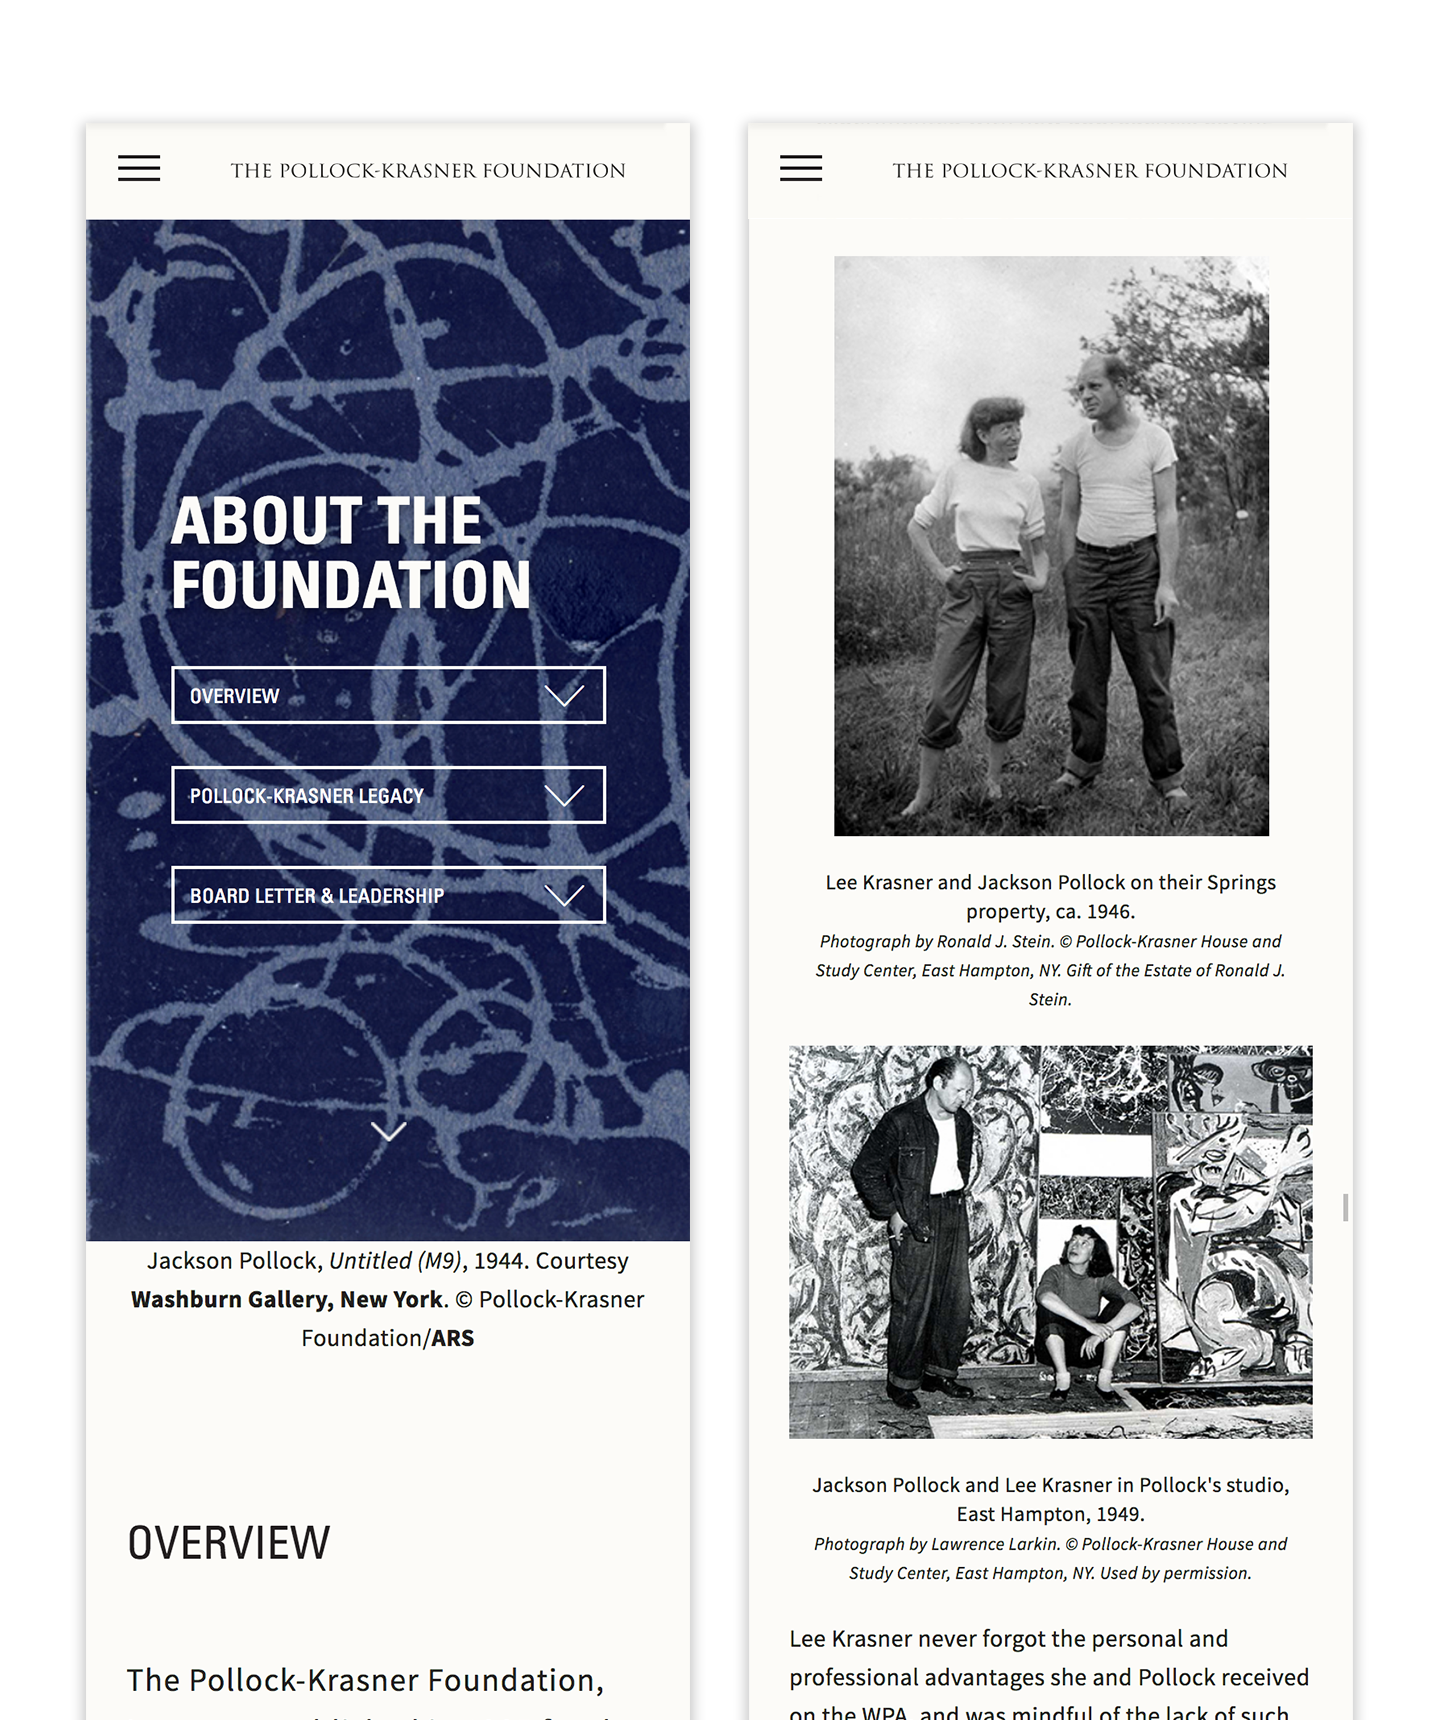 2 responsive mobile page designs: the landing experience for the About page and a set of photographs of Lee Krasner and Jackson Pollock